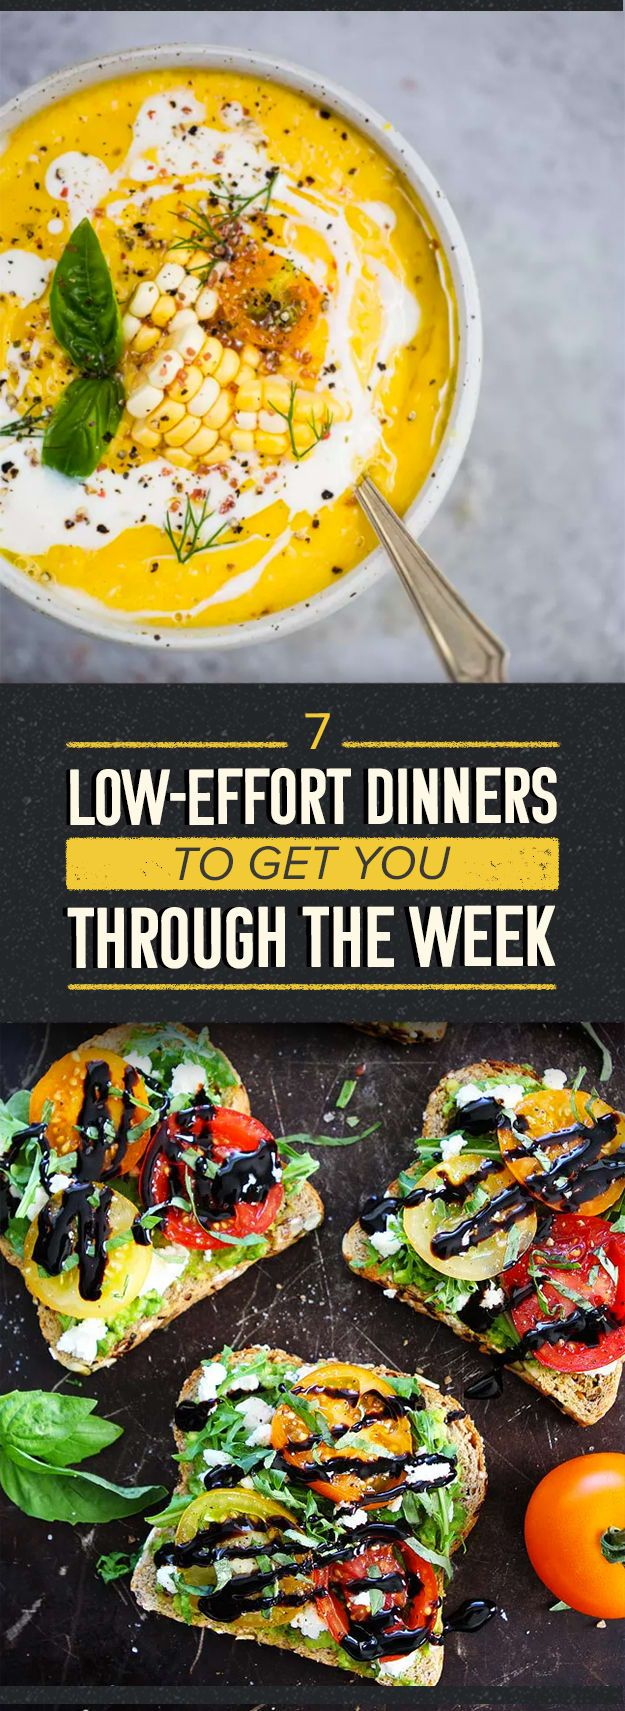 7 Low-Effort Dinners To Get You Through The Week